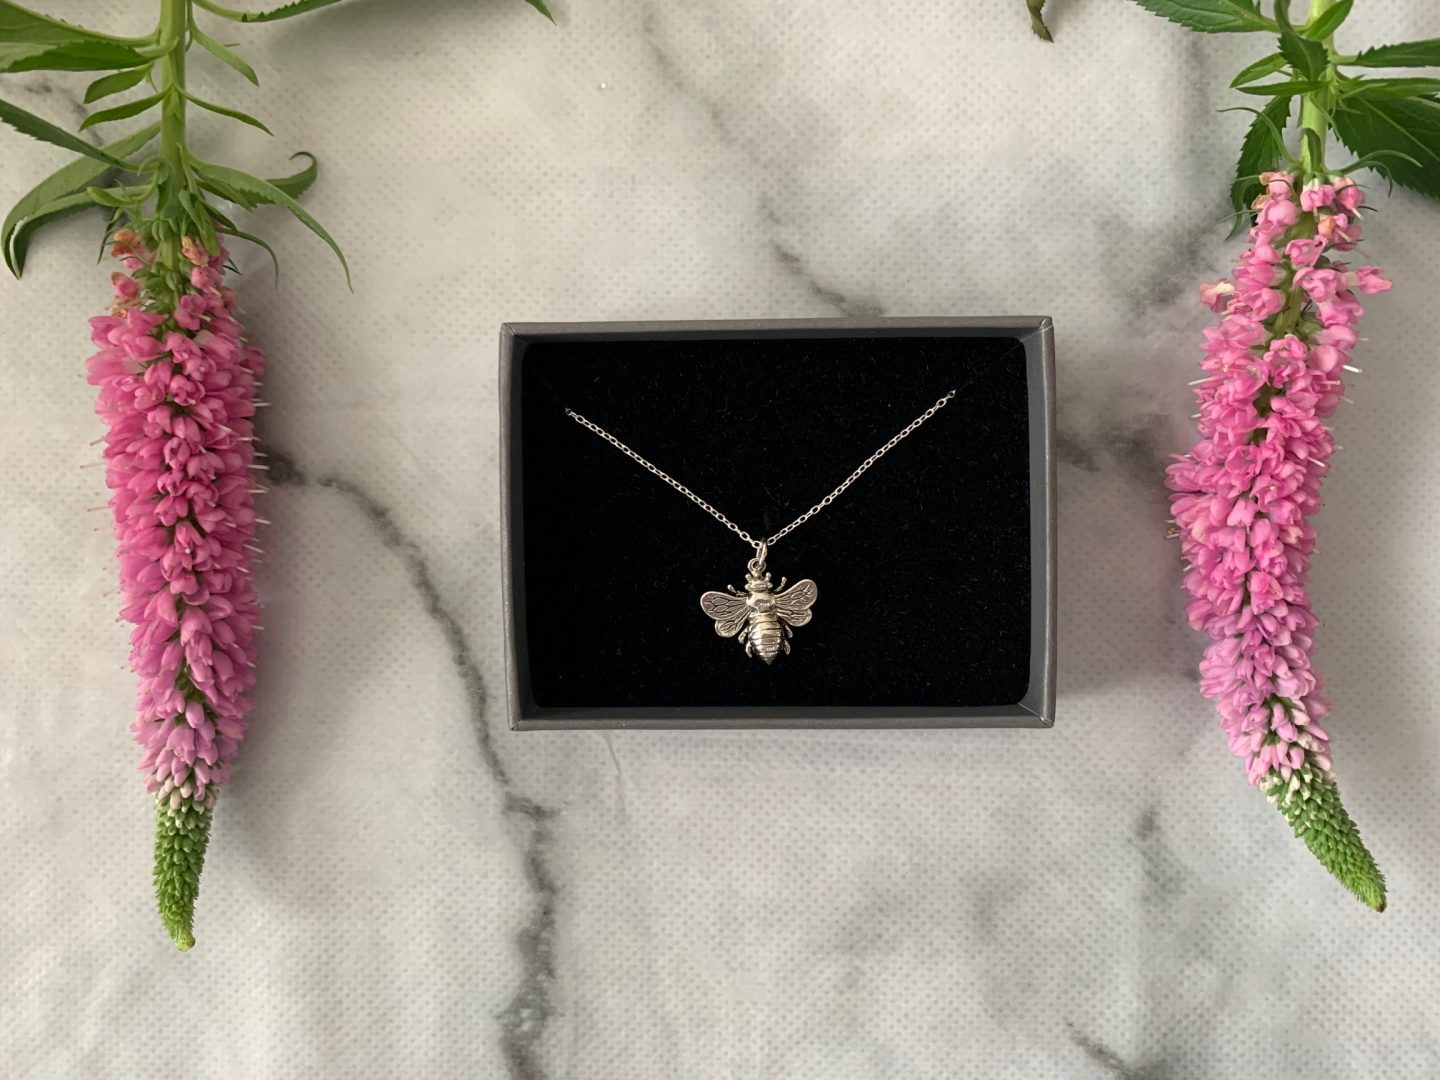 bumblebee necklace review